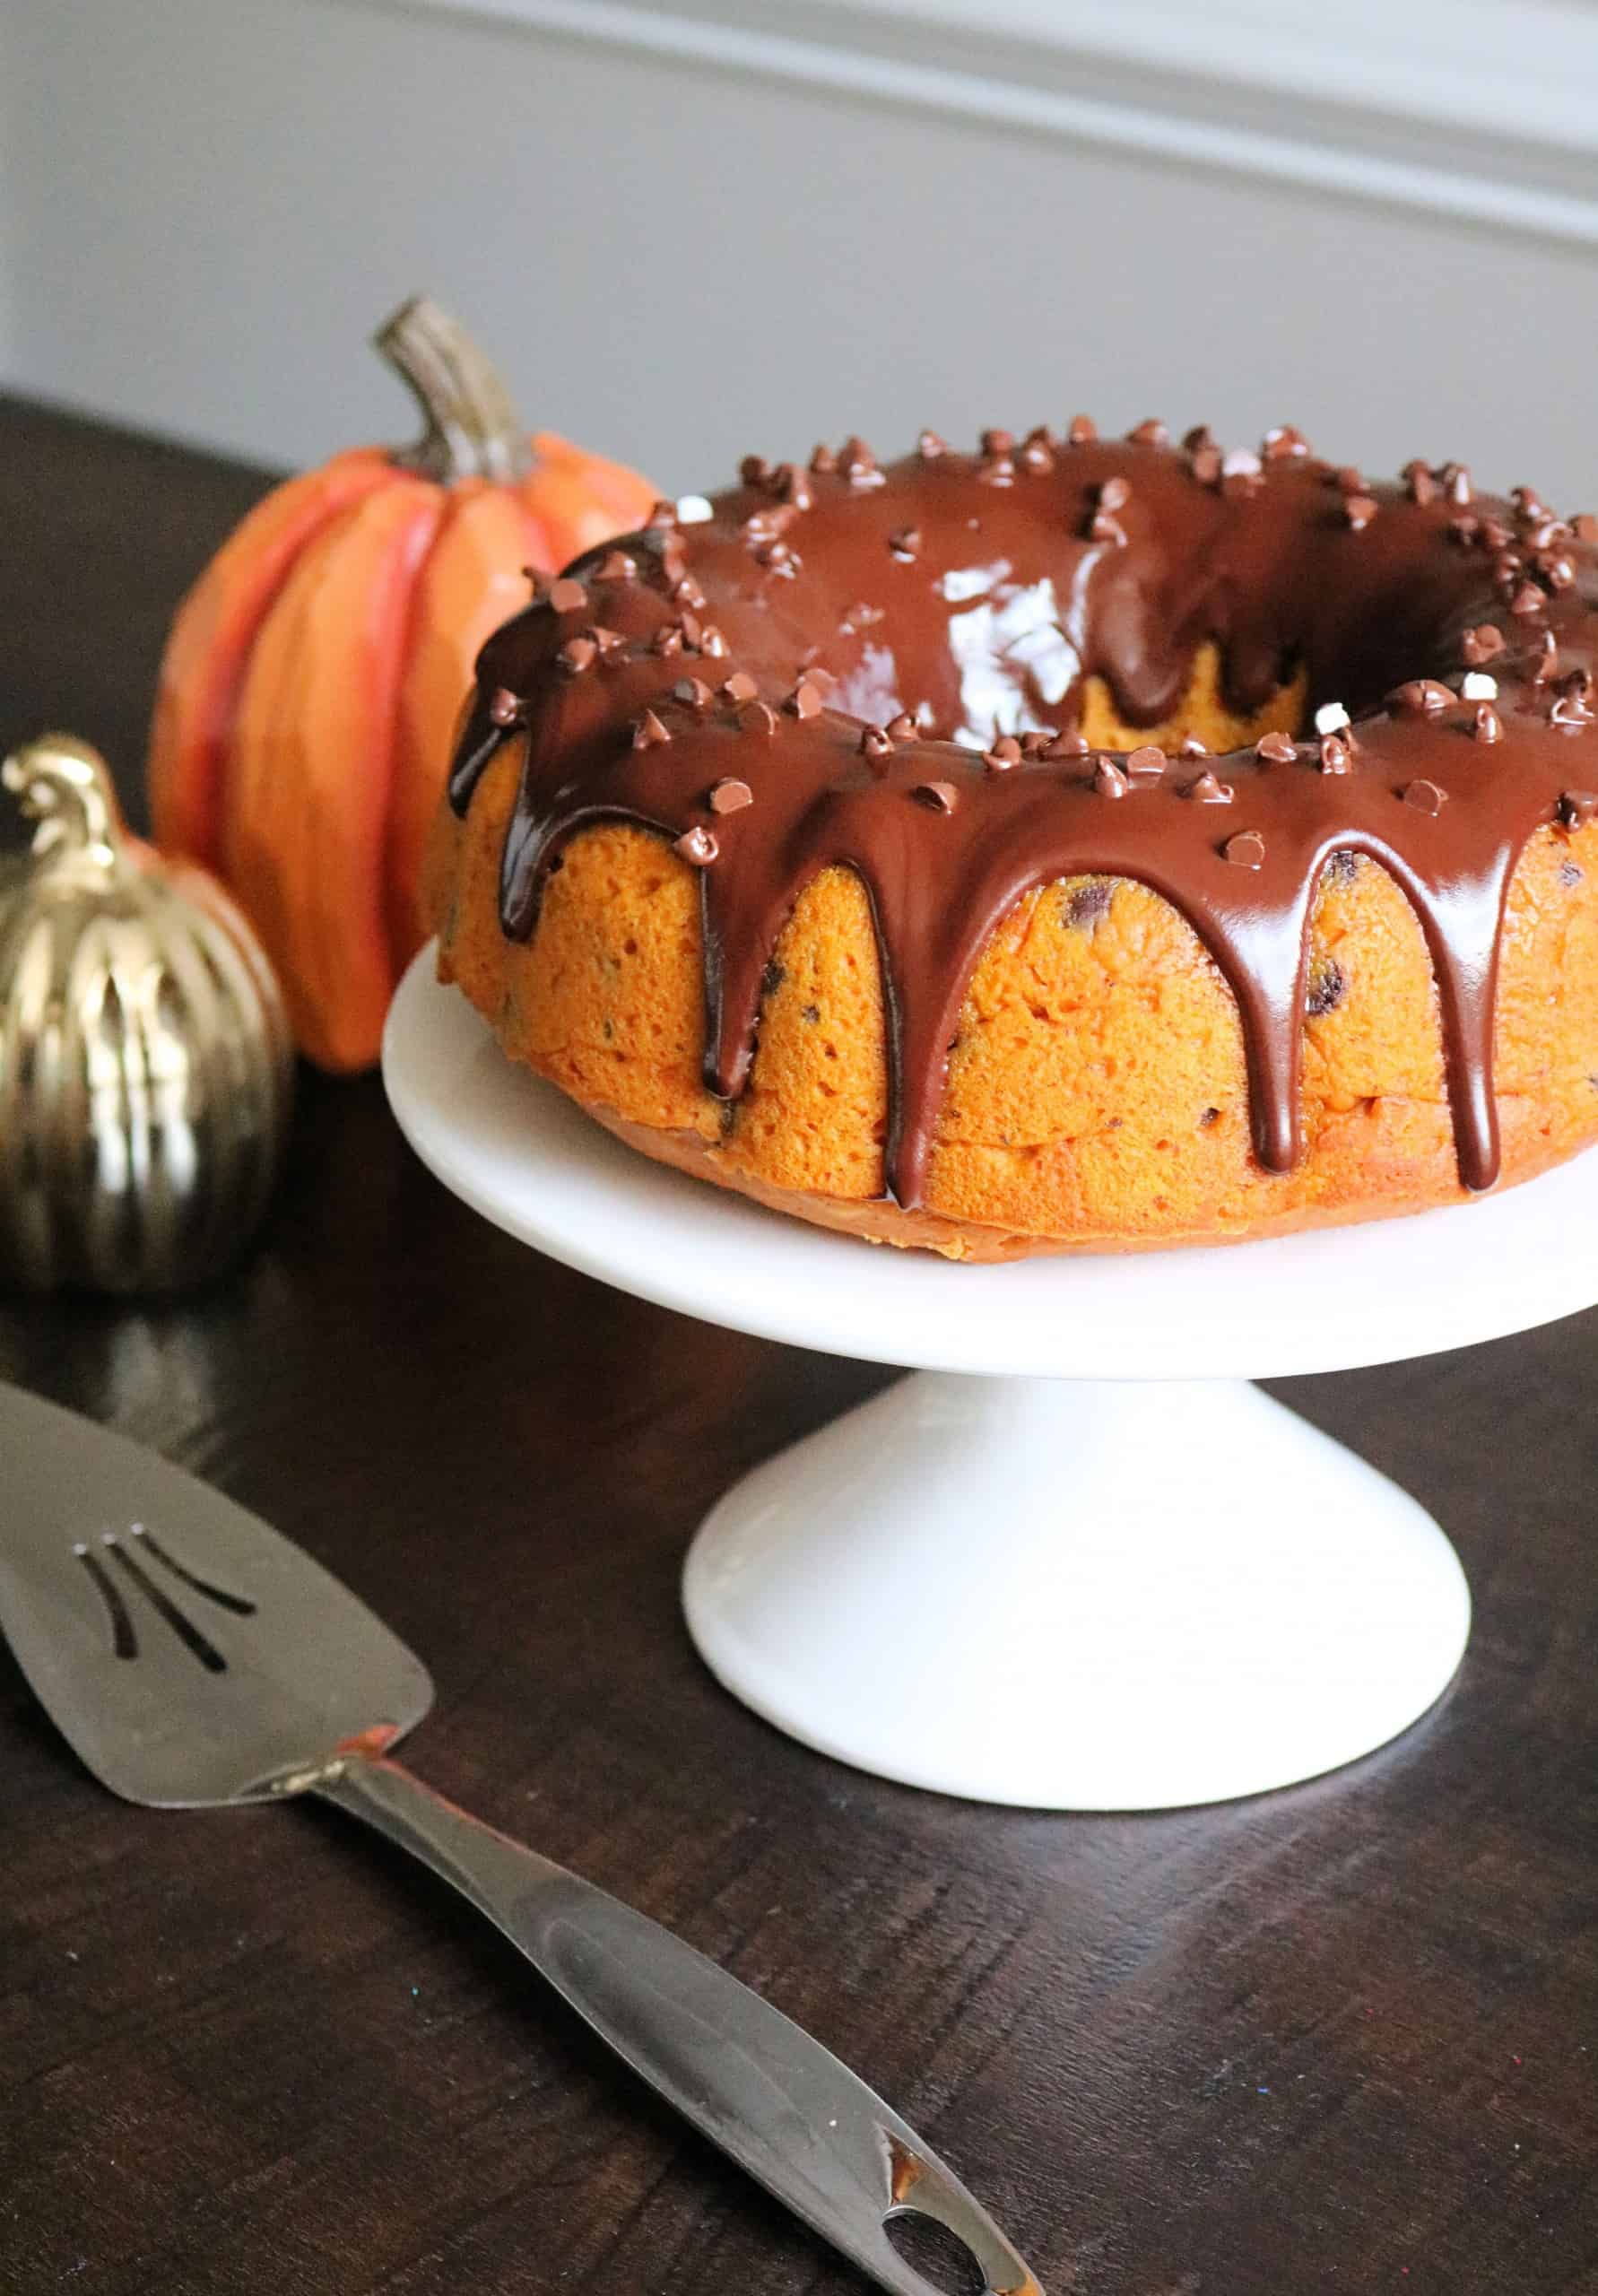 Make this Delicious and Easy Pumpkin Chocolate Chip Bundt Cake for Fall or Thanksgiving! The homemade pumpkin cake is moist and flavorful with pumpkin spices, loaded with chocolate chips, and topped with a beautiful chocolate ganache glaze. #pumpkincake #cake #falldessert #pumpkinrecipe